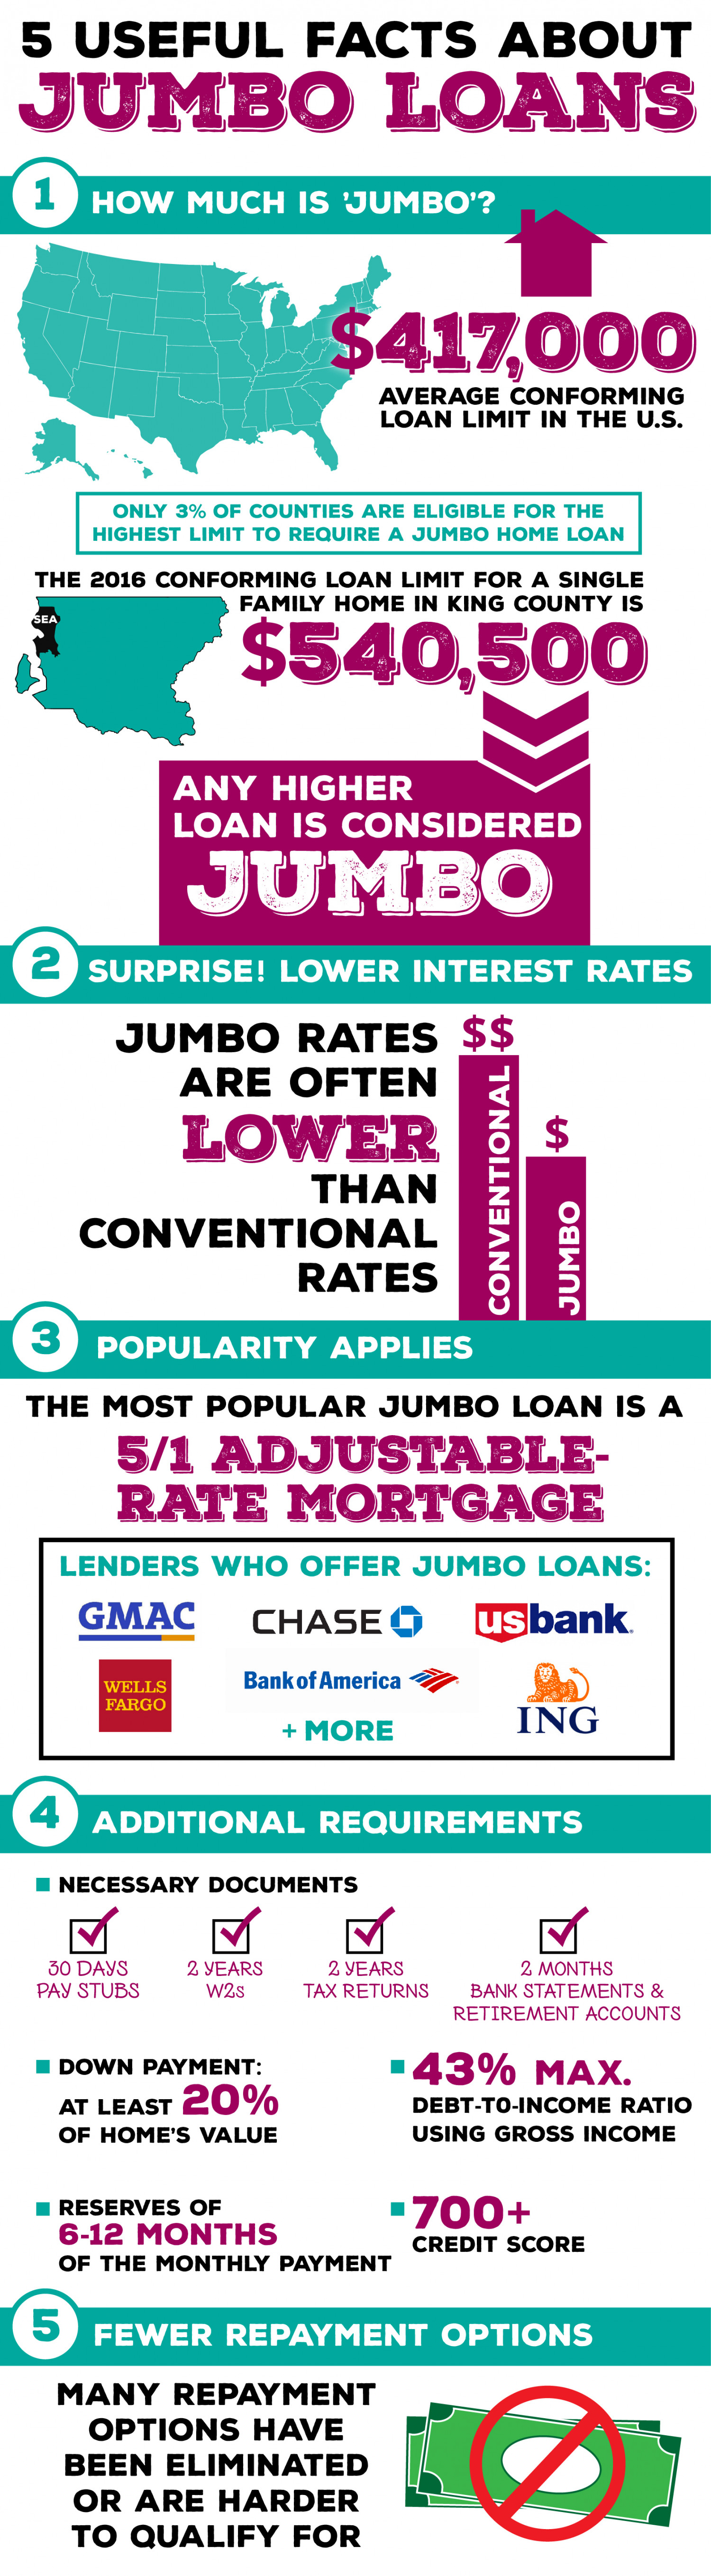 5 Useful Facts About Jumbo Loans Infographic